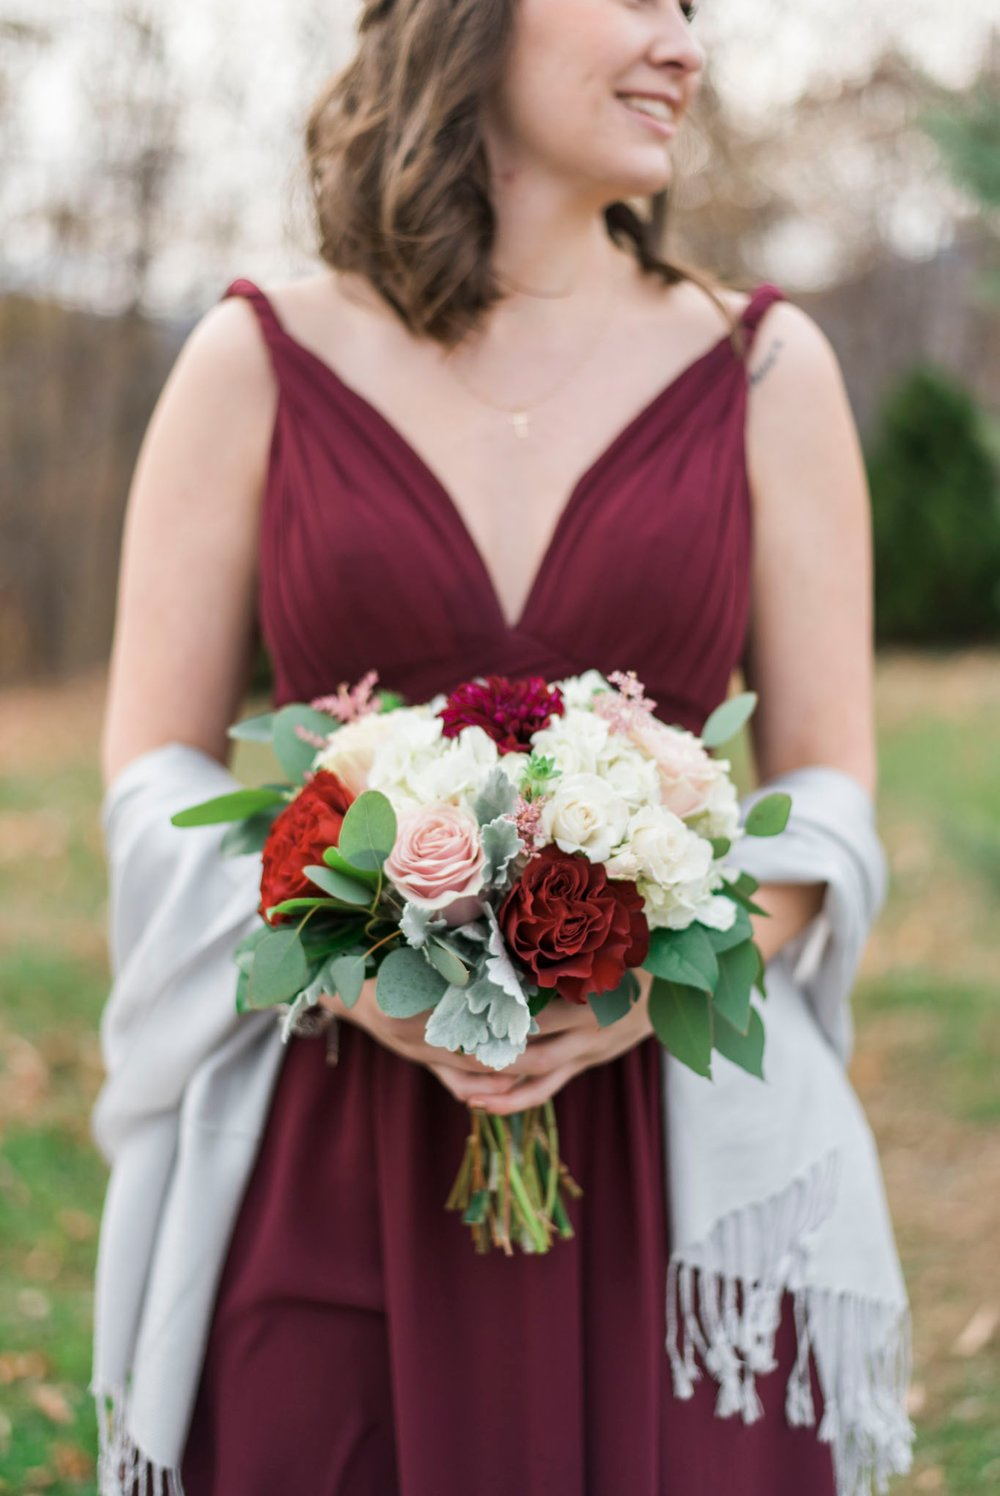 IrvineEstate_LexingtonVA_Wedding_FallWedding_VirginiaWeddingPhotographer 75.jpg